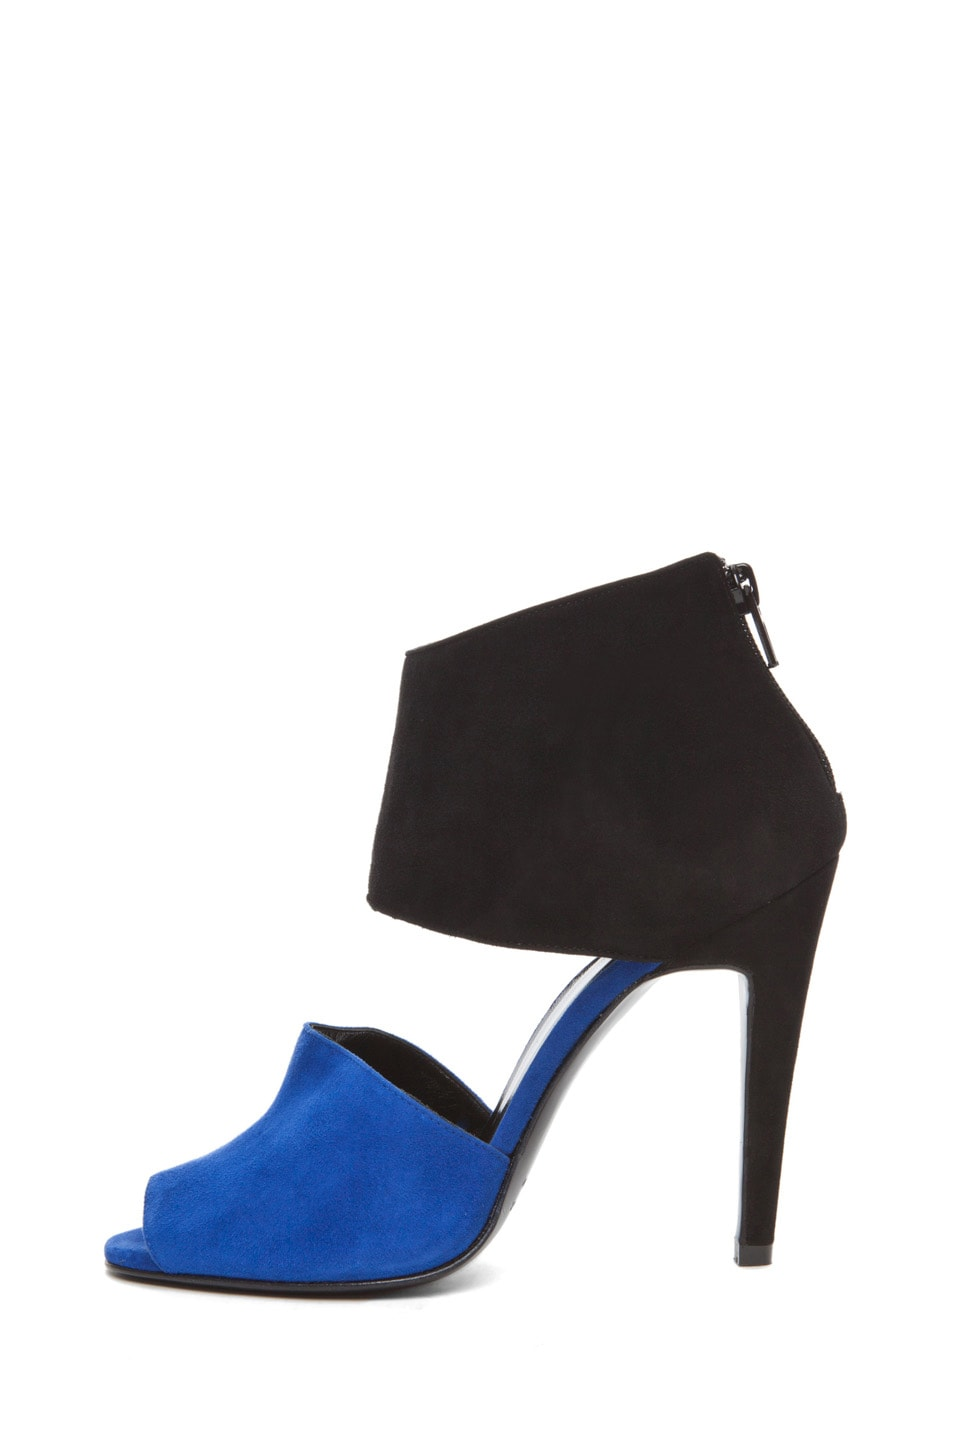 Image 2 of Pierre Hardy Multi Colored Heel in Blue